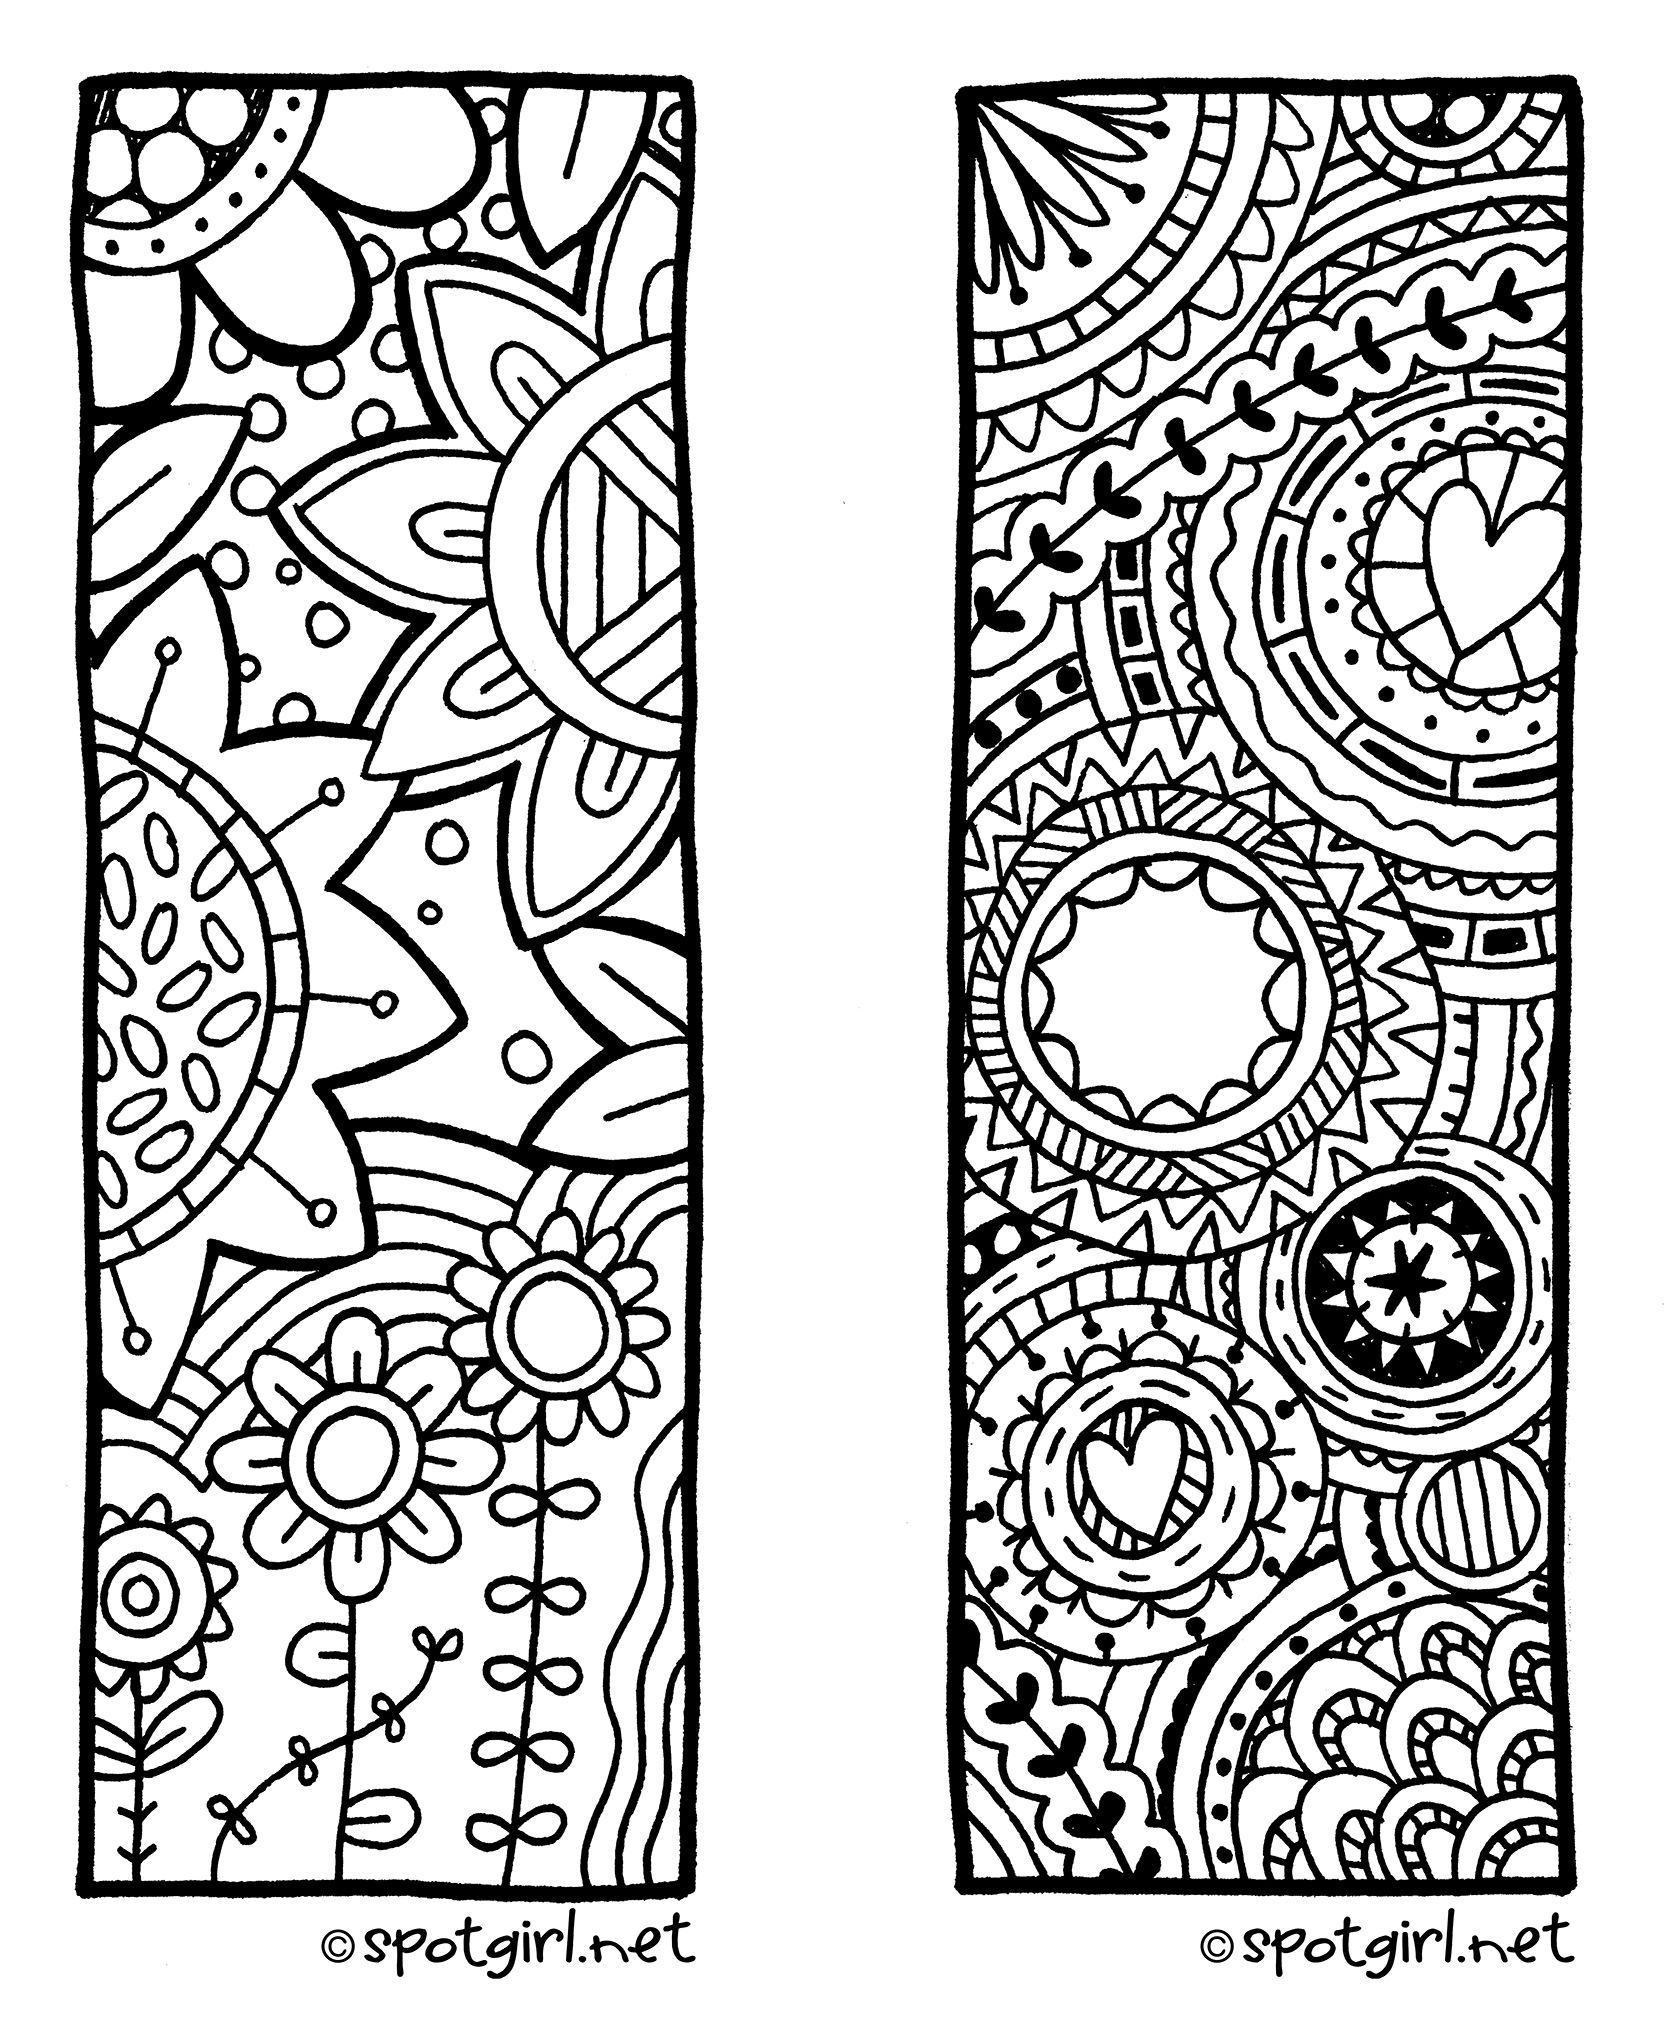 Free coloring pages for reading - A Collection Of Great Coloring Pages There Are Lots Of Coloring Sheets All Over The Web Our Mission Is To Organize Them And Have Them Ranked By The